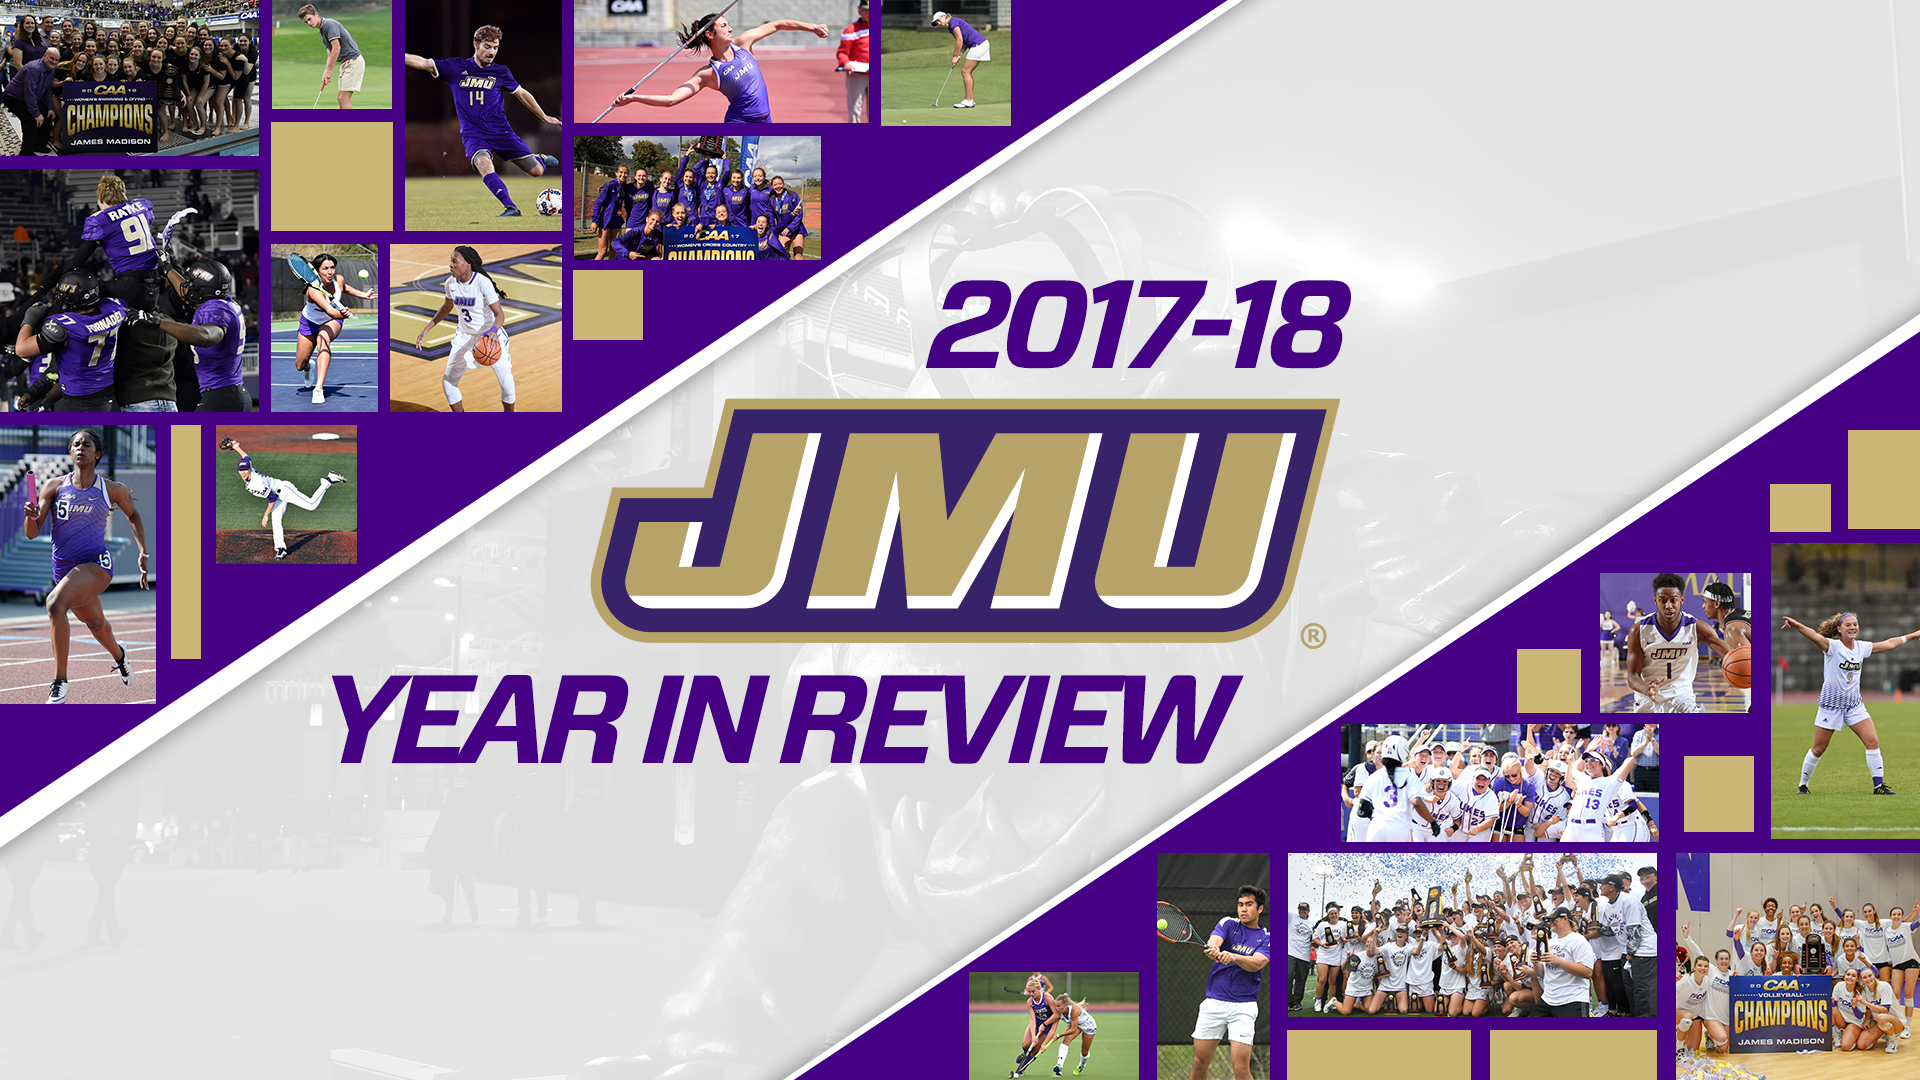 Administration: JMU Posts State's Best All-Sports Record for Third Year Running, 81st in Learfield Director's Cup